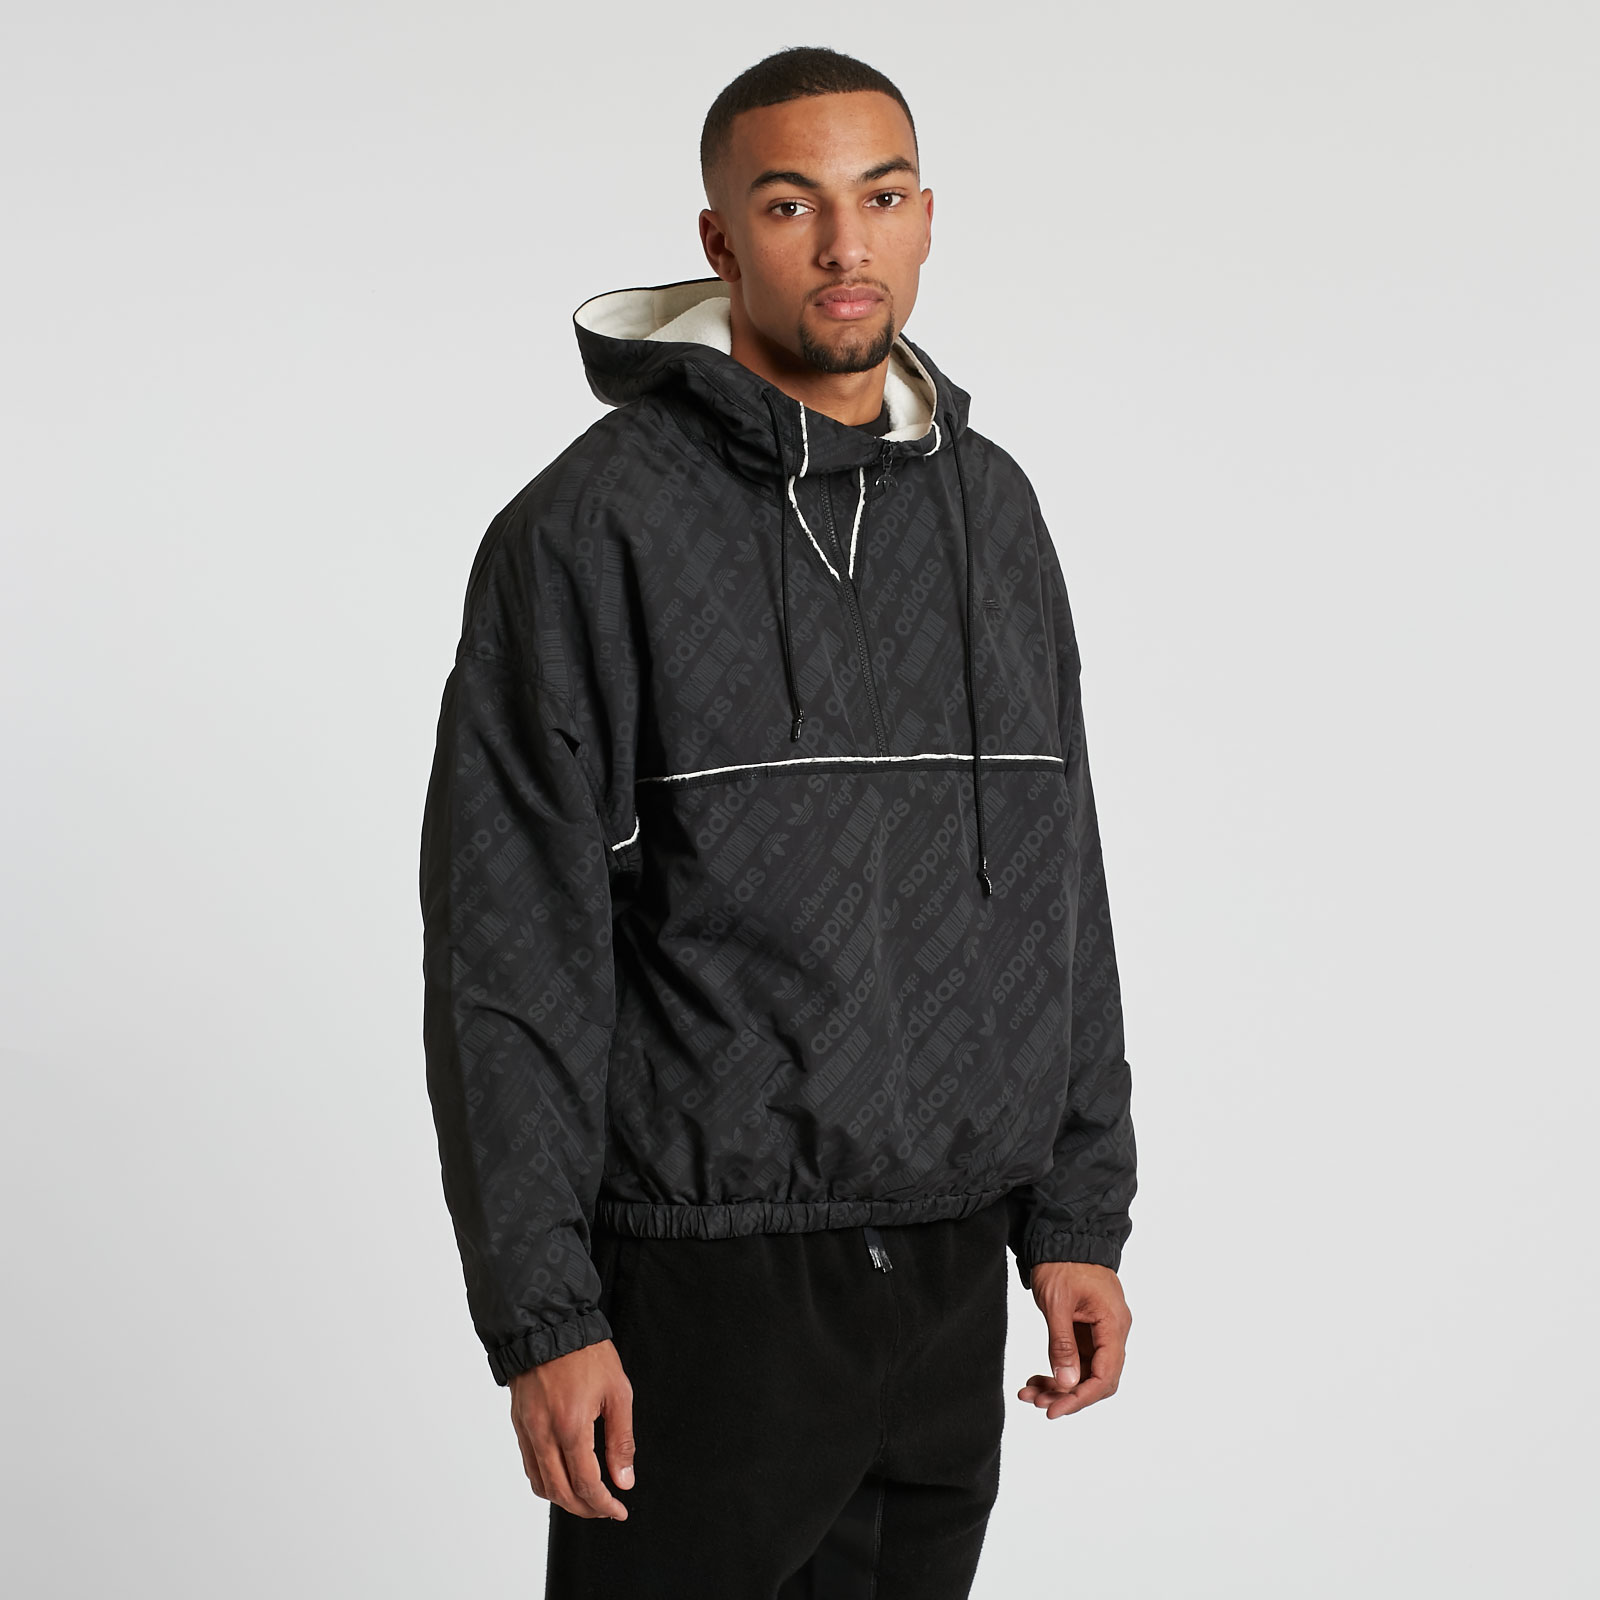 68b9bf1345 adidas Originals by Alexander Wang Windbreaker adidas Originals by  Alexander Wang Windbreaker ...